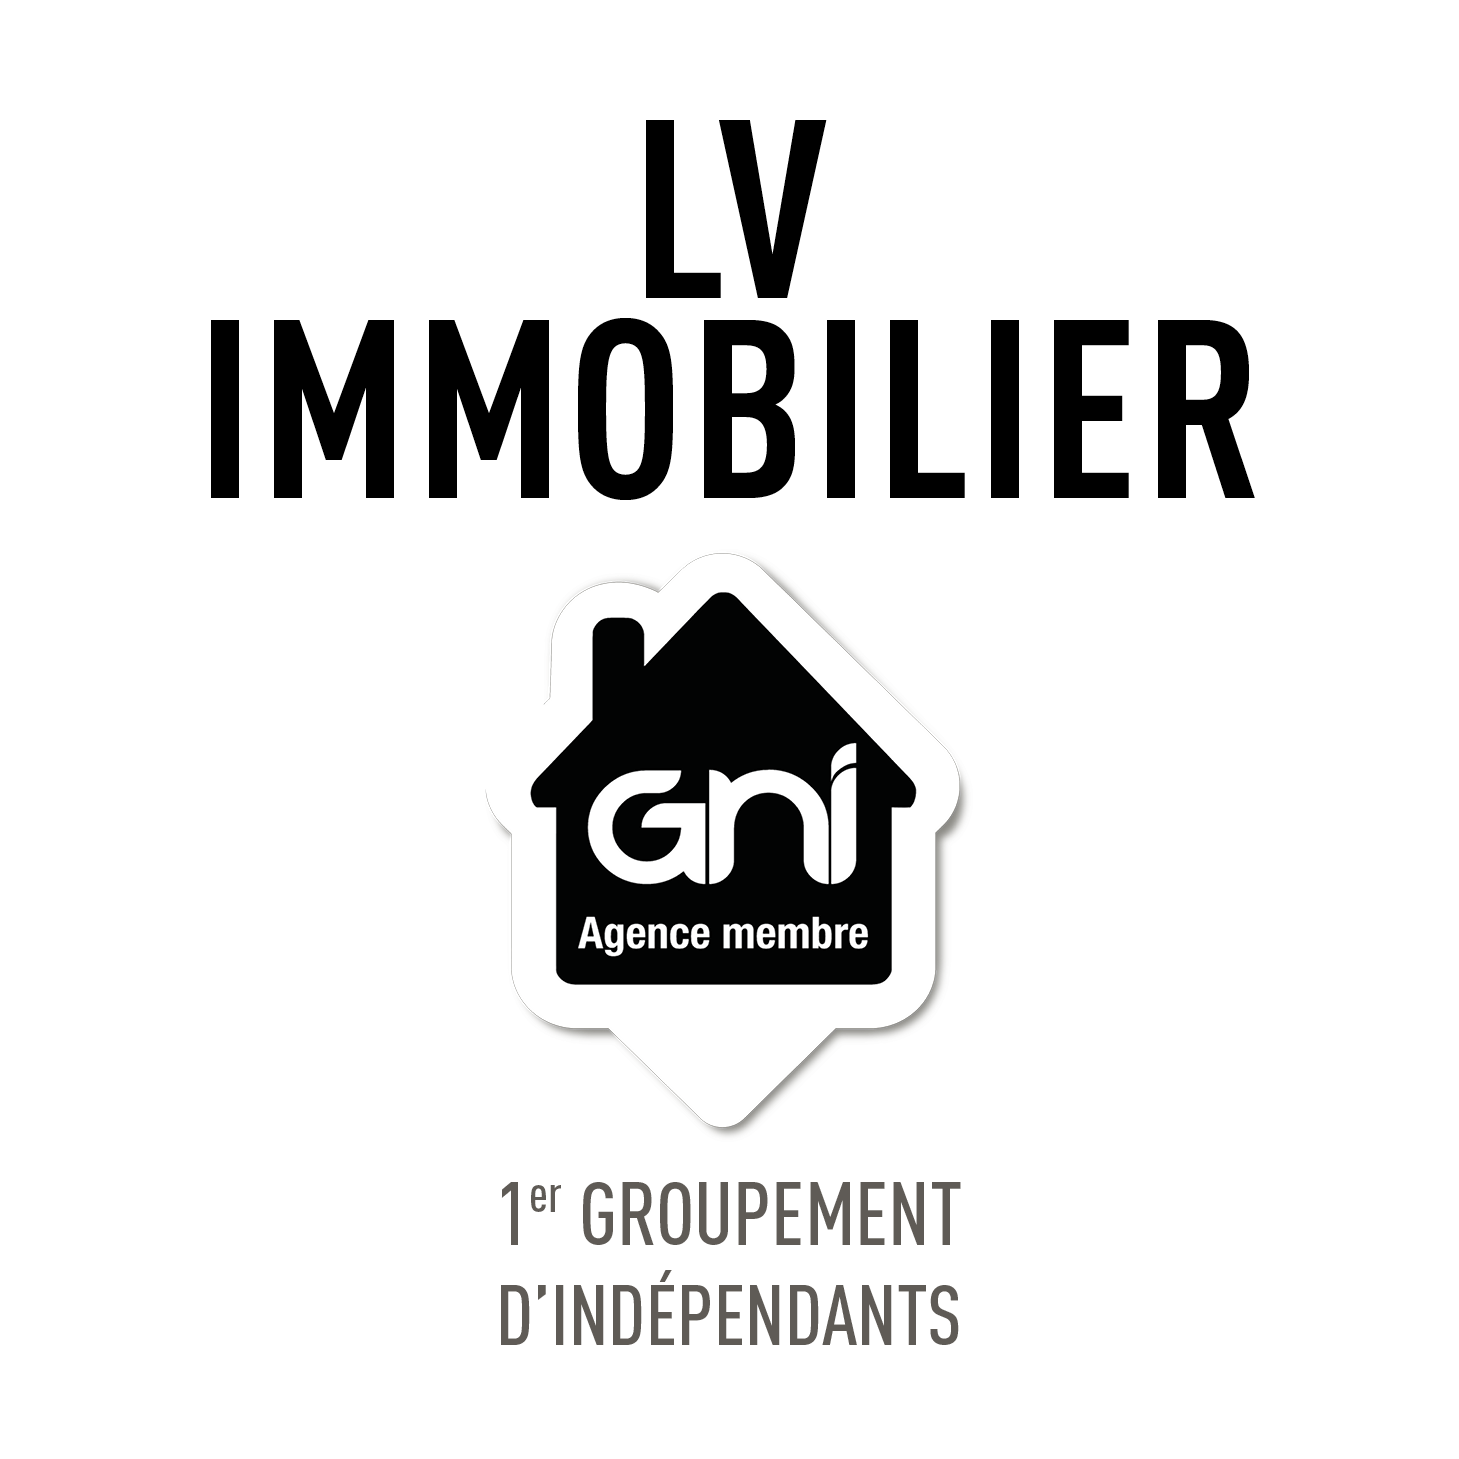 LV IMMOBILIER